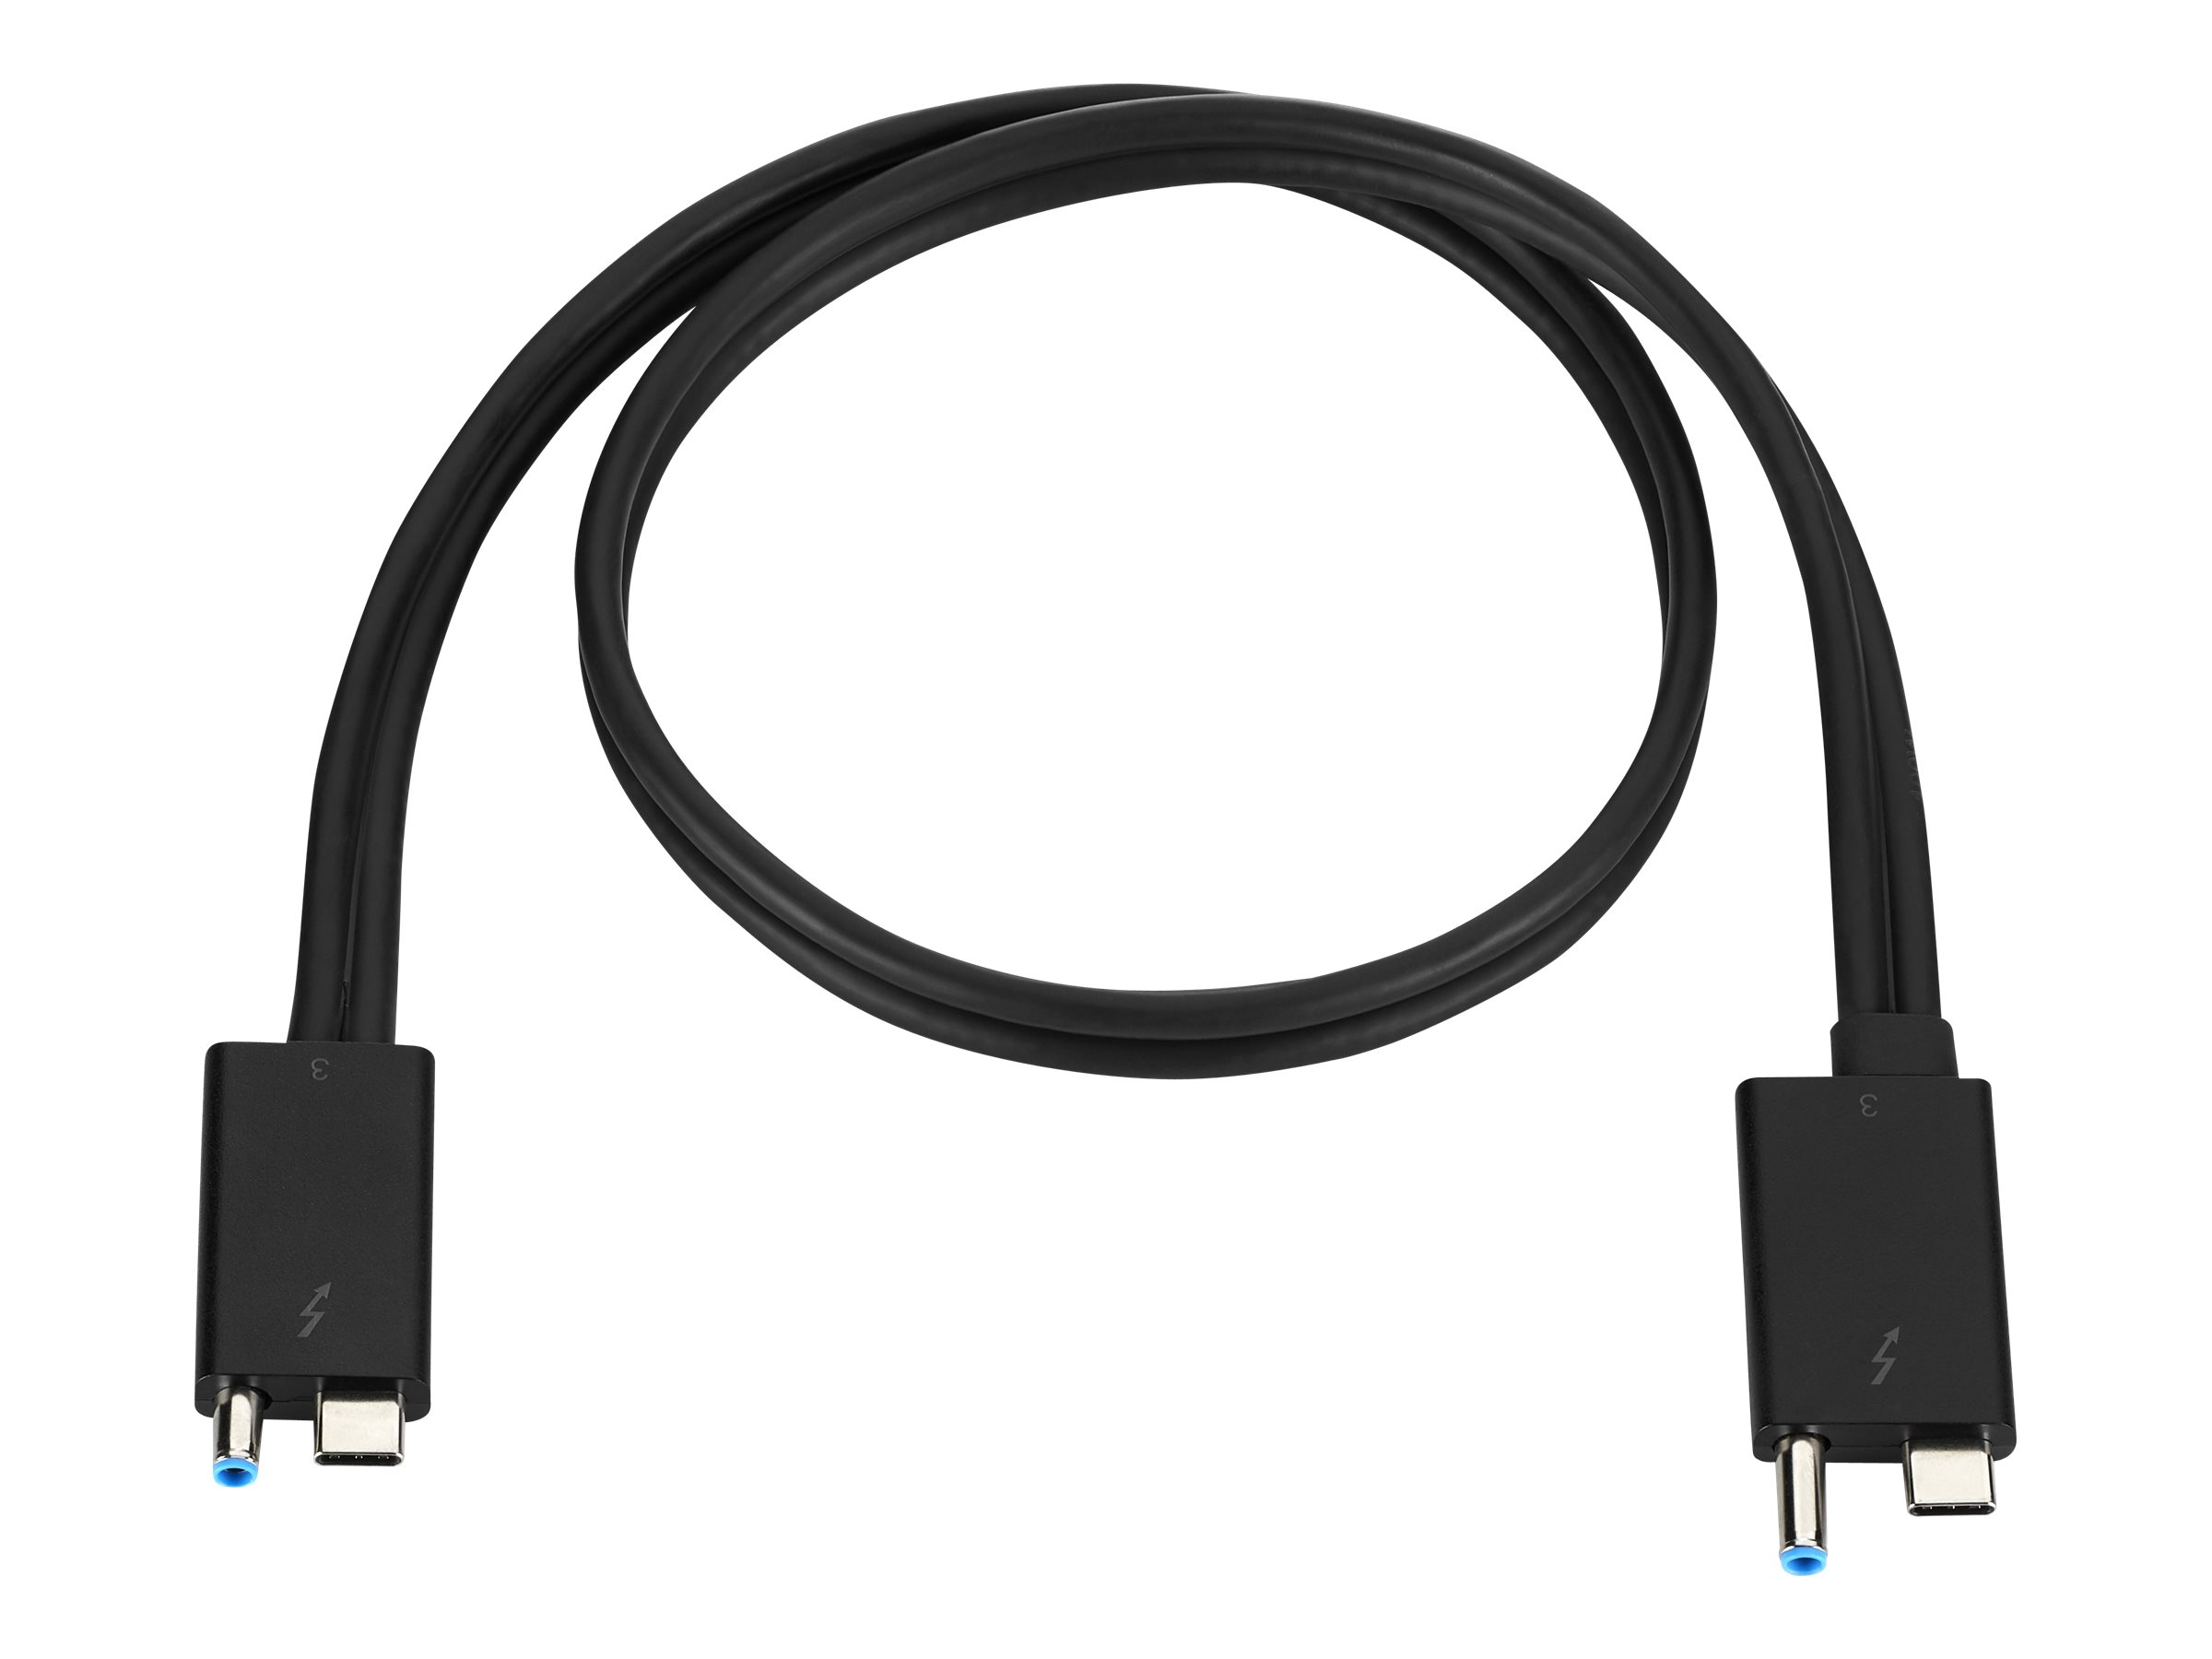 HP Thunderbolt cable - 2.3 ft